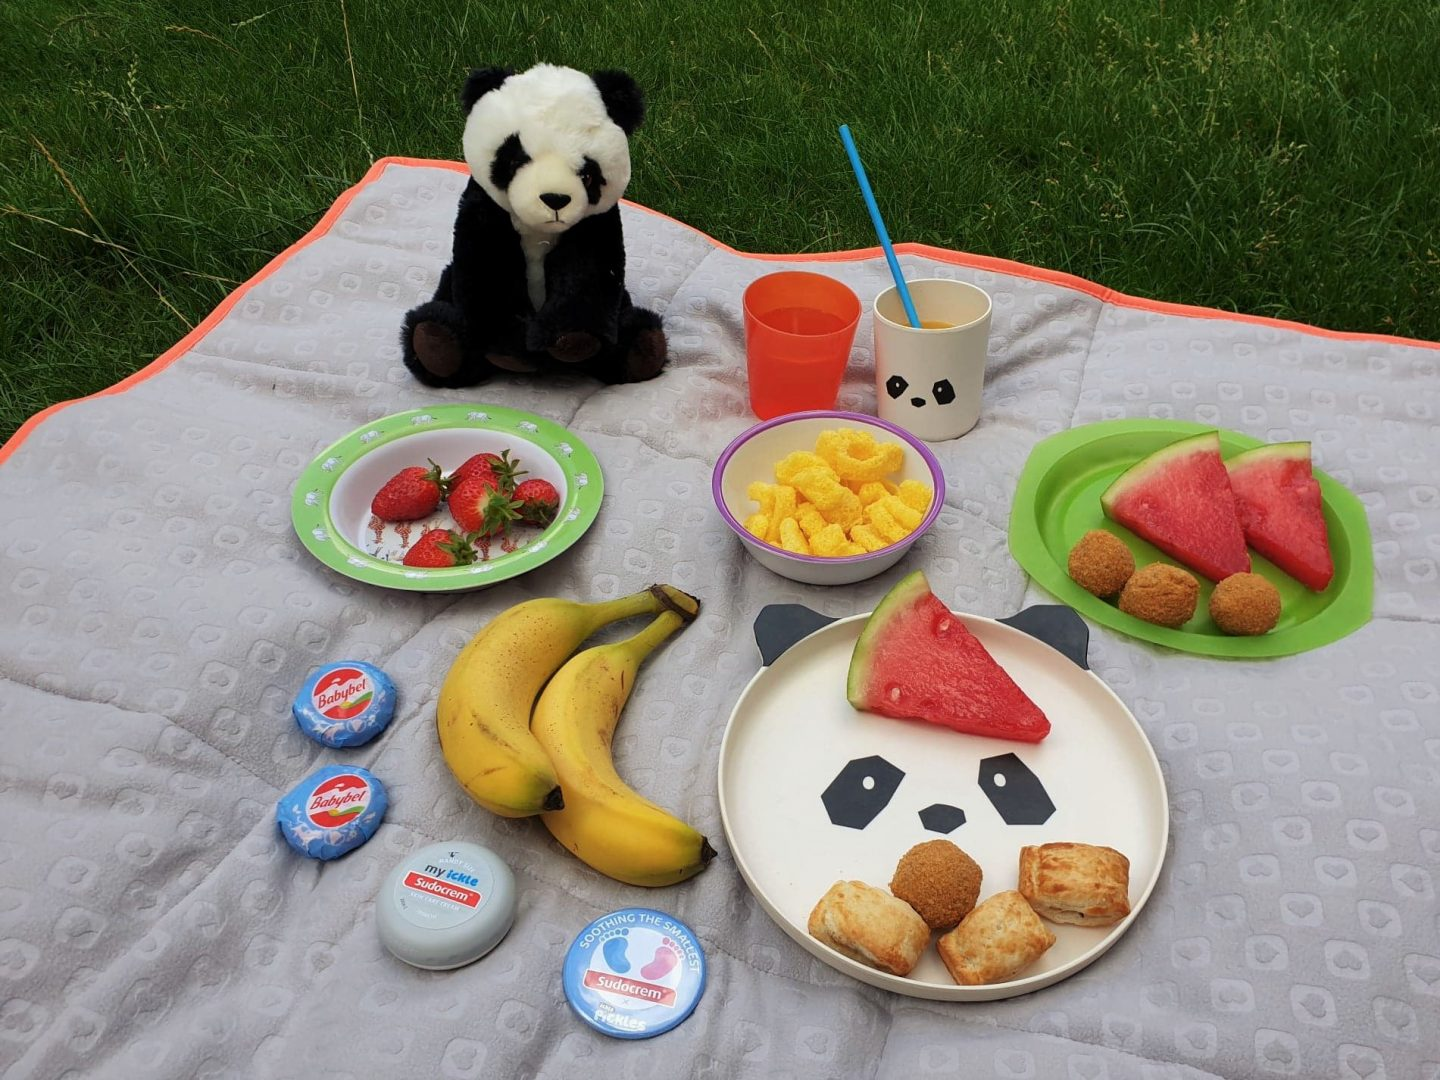 Sudocrem x Ickle Pickles Soothing the Smallest panda picnic